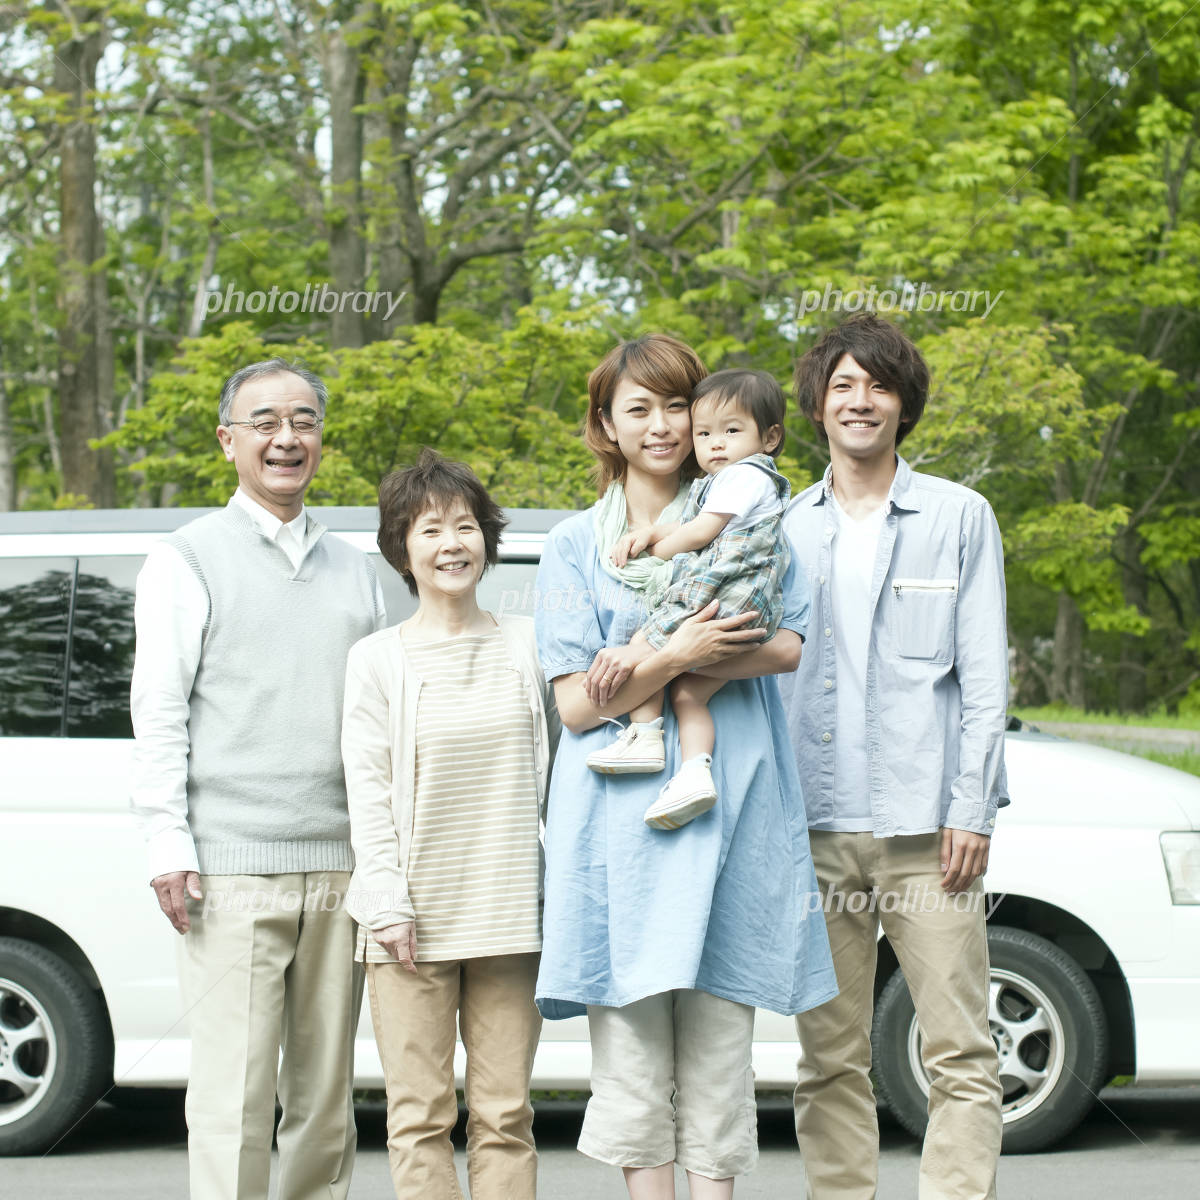 Smile in front of the car 3 generation family Photo